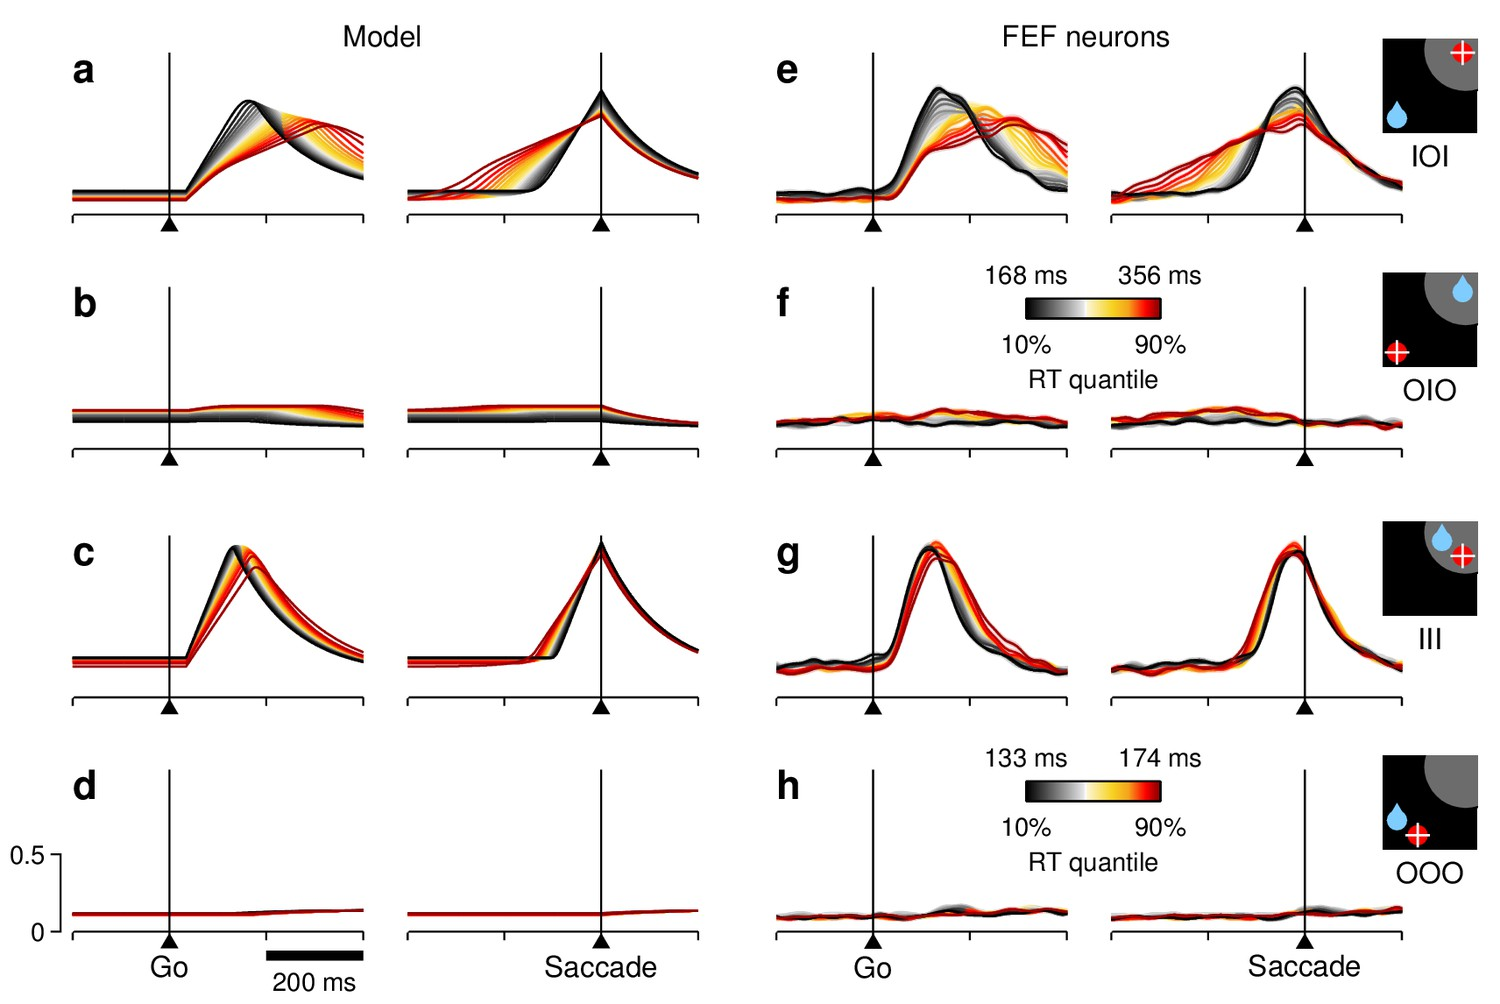 Motor Selection Dynamics In Fef Explain The Reaction Time Variance Aaa C Wire Color Diagram Typical Single Line Unit Rt Sensitivity Of Average Population Activity